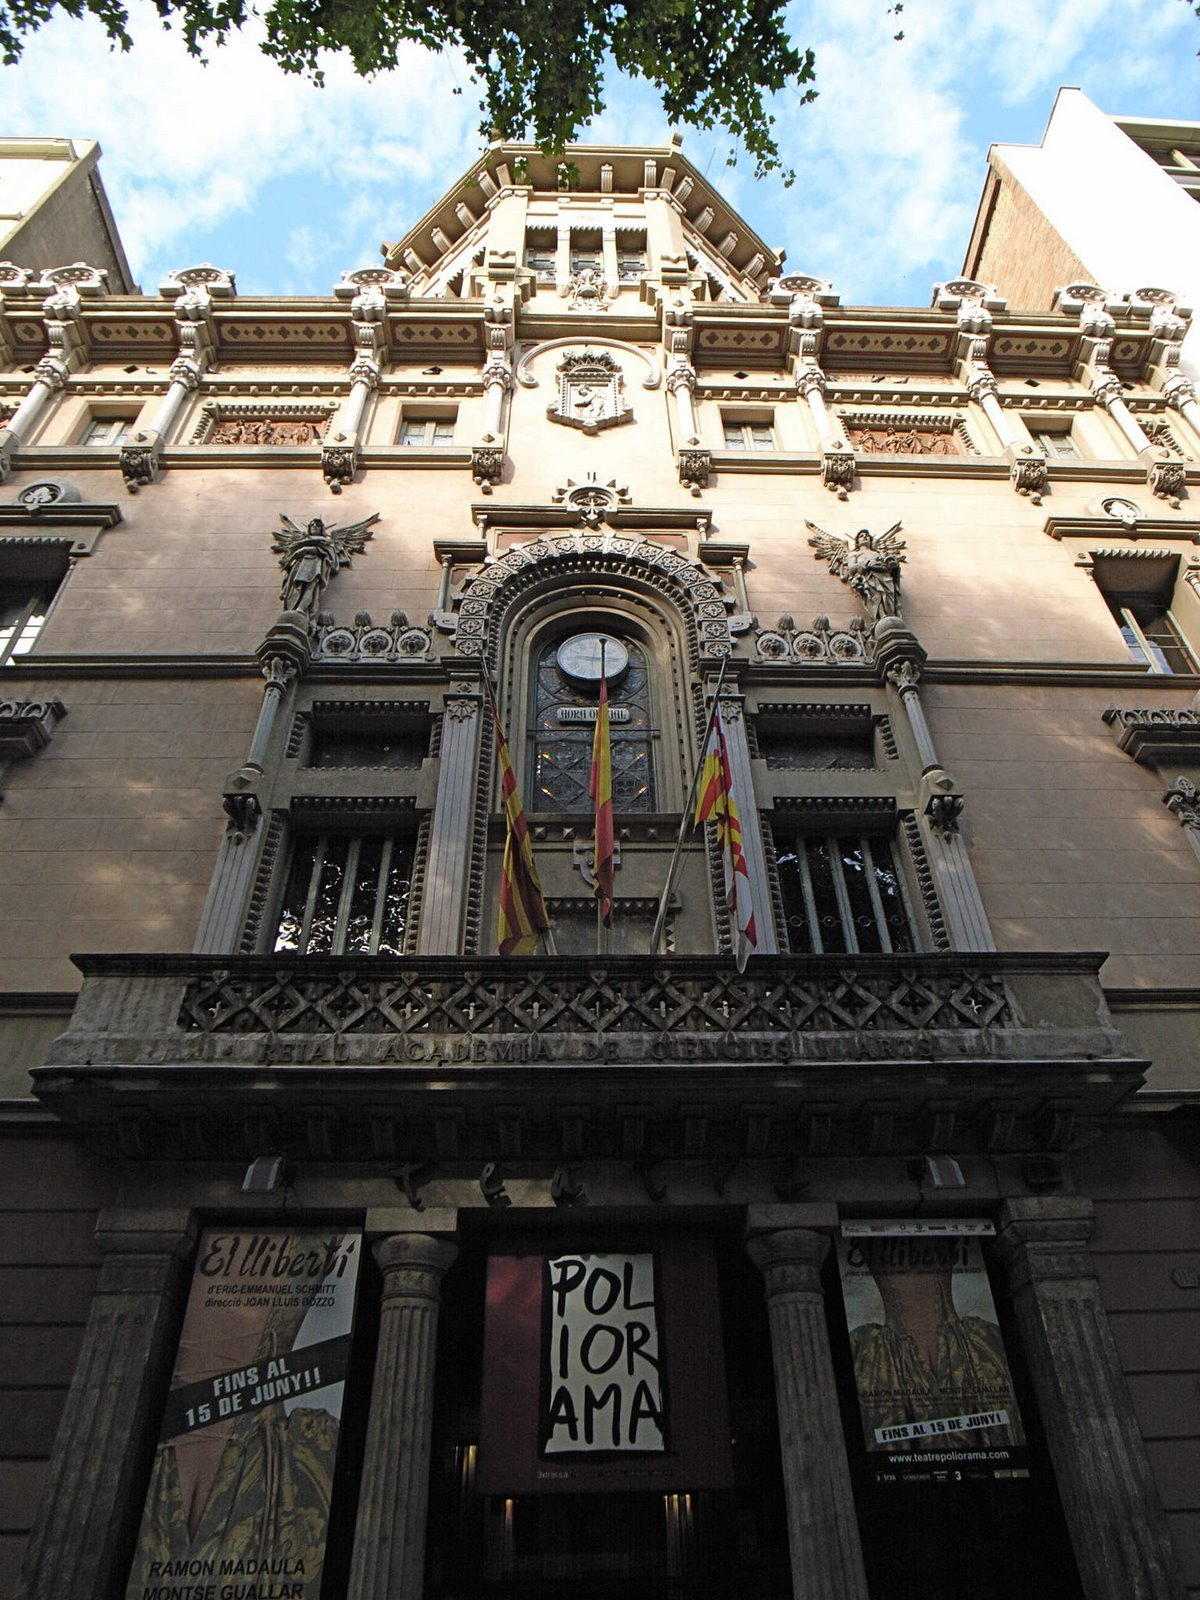 Royal academy of sciences and arts of barcelona wikidata - Ama barcelona ...